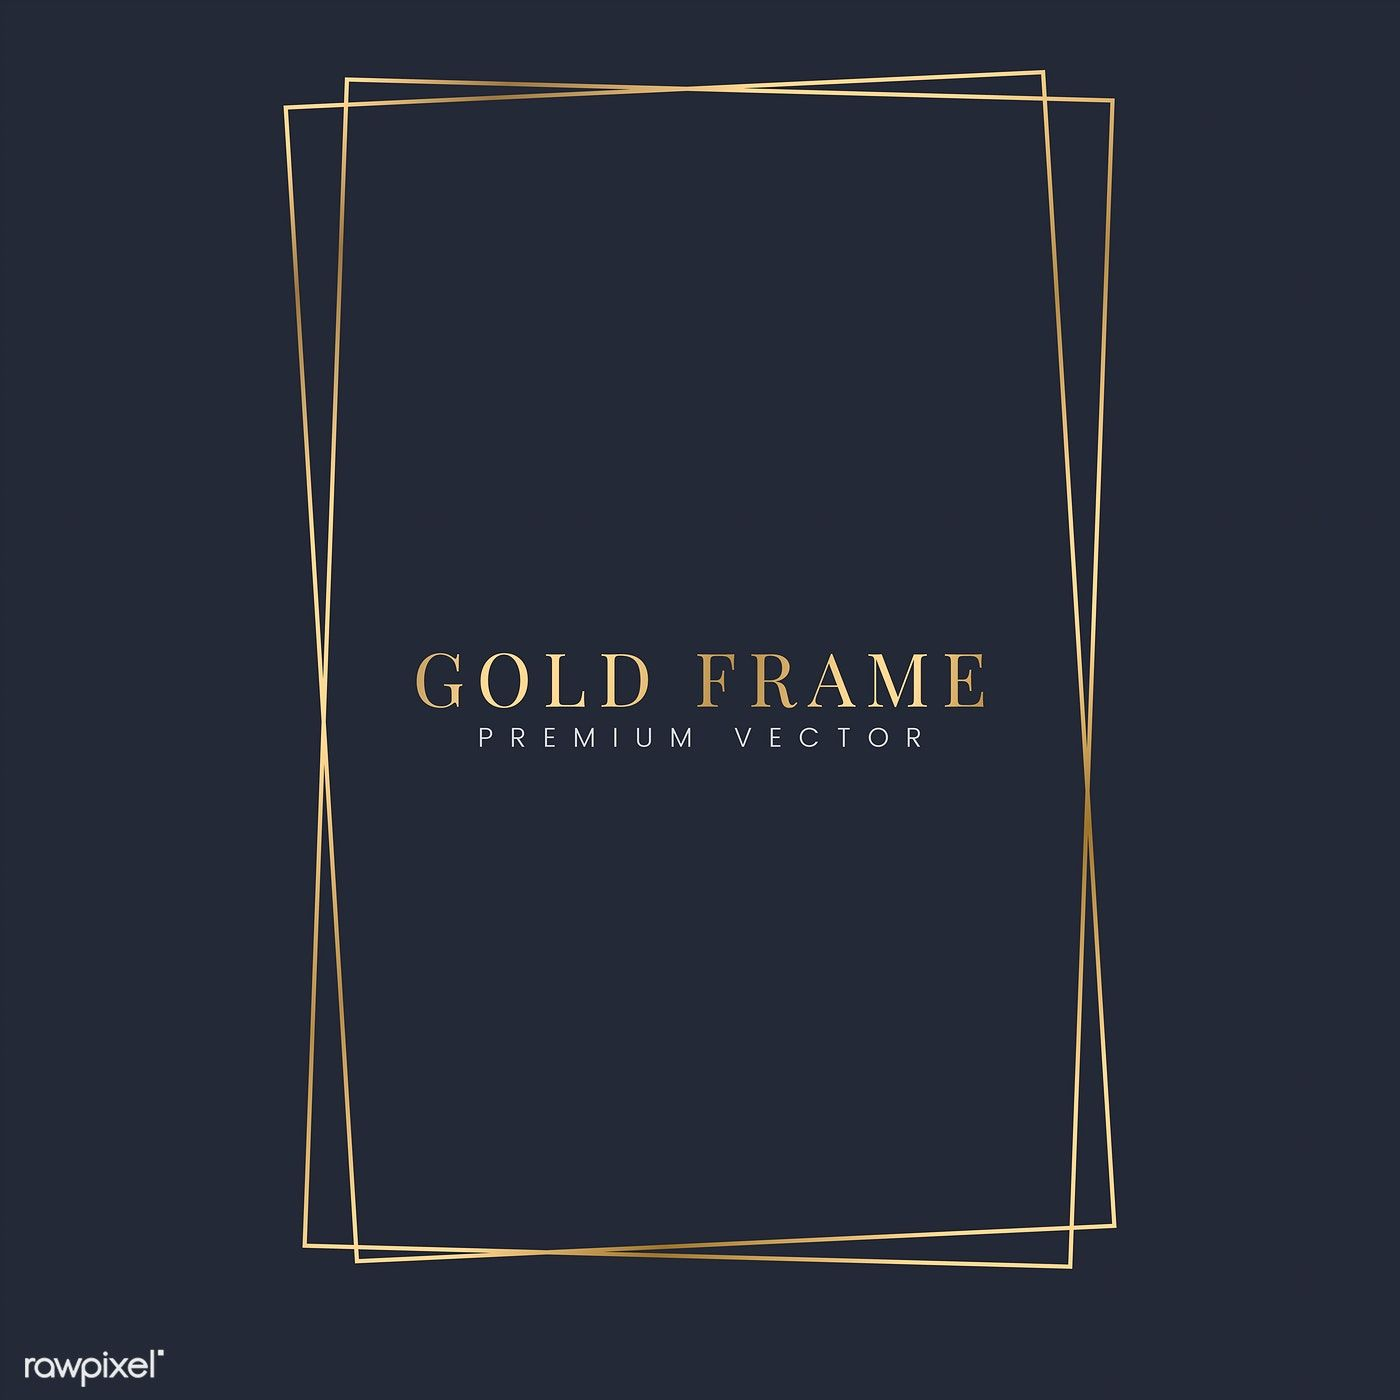 Download Premium Vector Of Golden Rectangle Frame Template